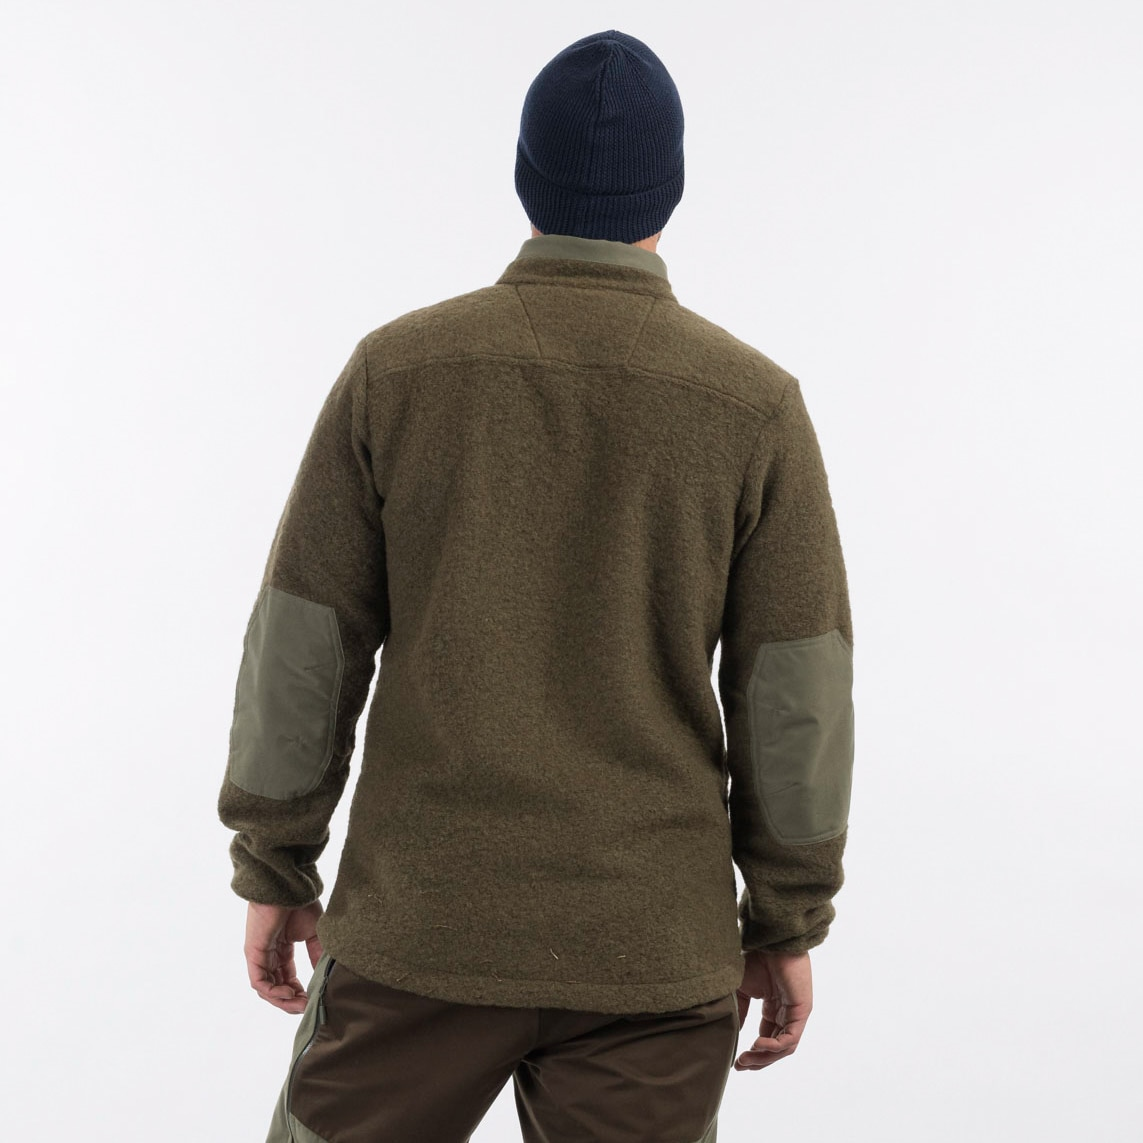 Myrull V2 Outdoor Jacket